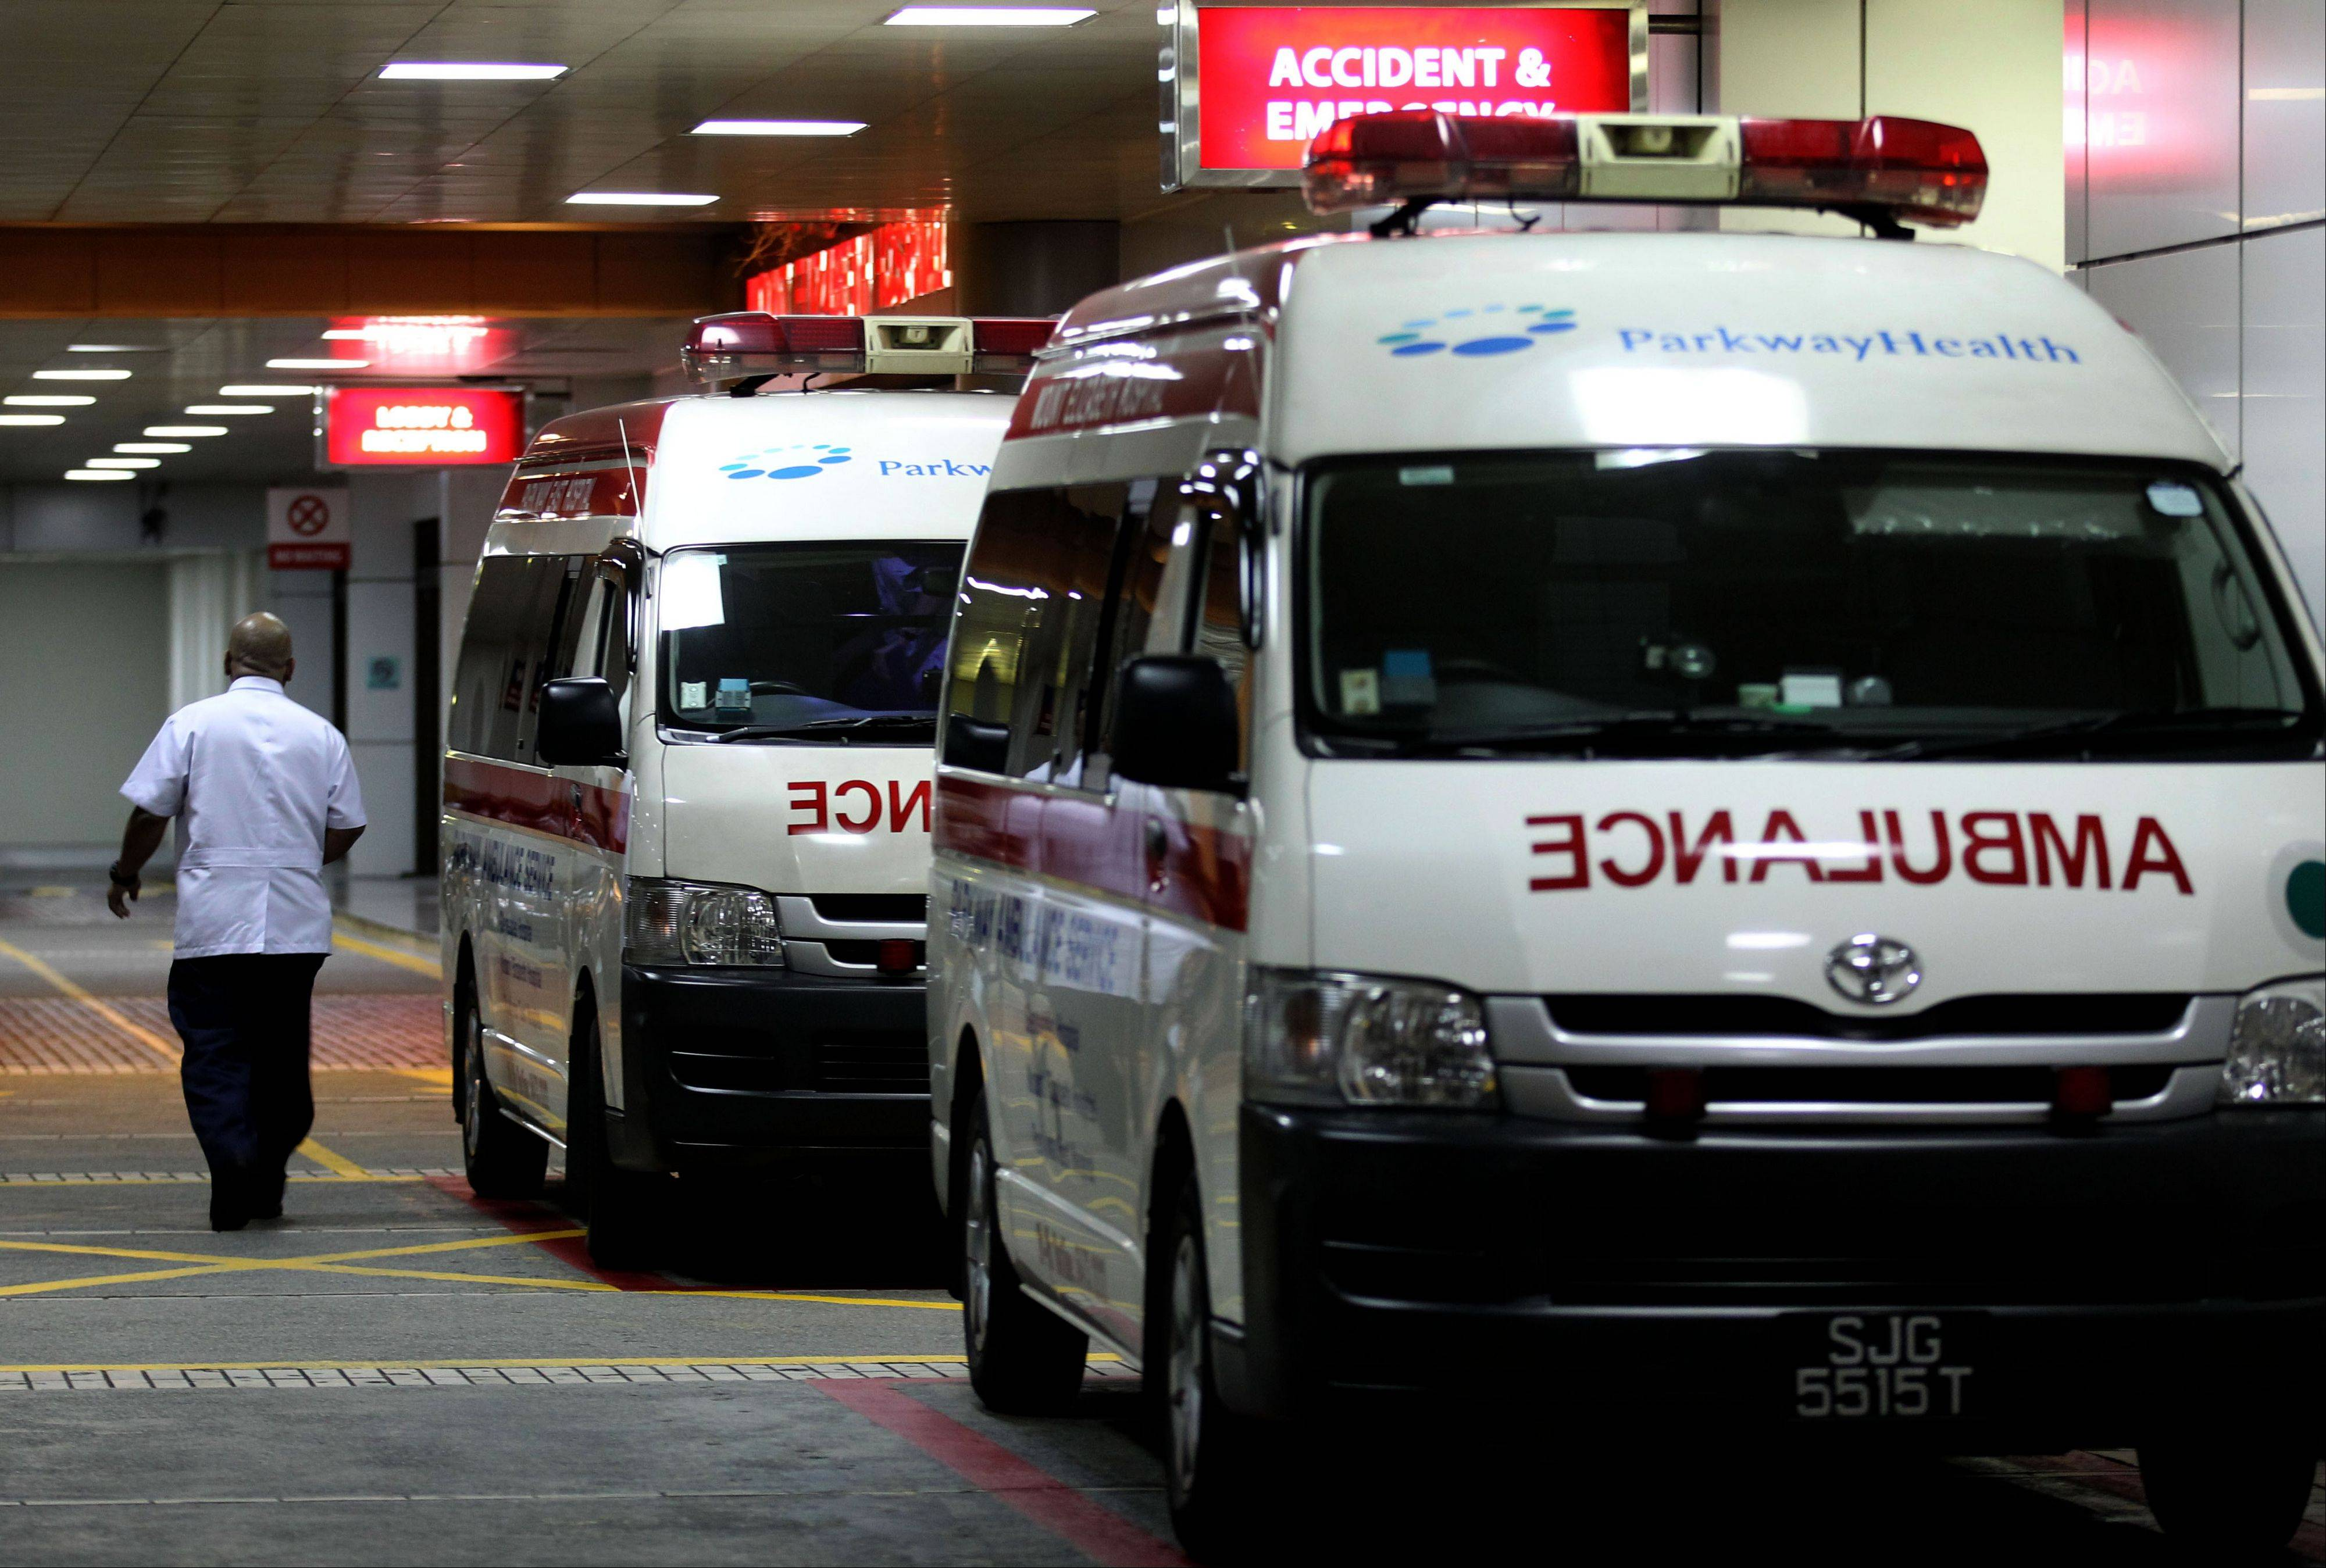 Ambulances are parked Friday outside the accident and emergency entrance at Mount Elizabeth Hospital in Singapore. After 10 days at a New Delhi hospital, the victim of a gang-rape in New Delhi was flown to Singapore on Thursday for treatment at the Mount Elizabeth hospital. She died early Saturday.